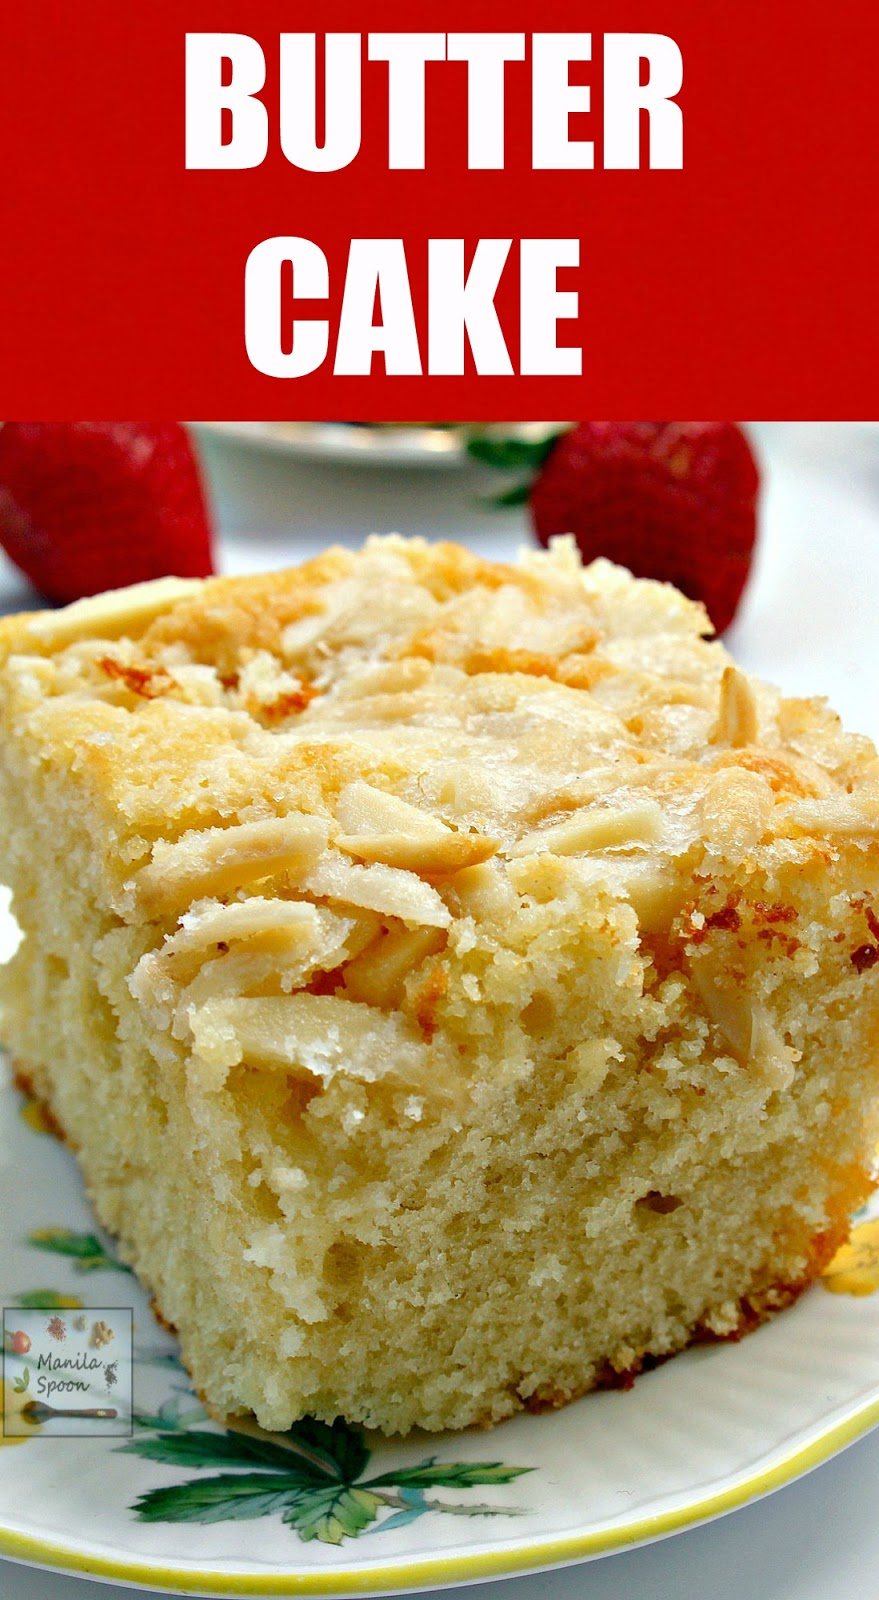 Luxurious sponge cake with a generous coating of butter and sugar and a sprinkling of almonds for extra crunch! Serve warm, cold, or room temperature this Butter Cake is always moist and scrumptious! | manilaspoon.com